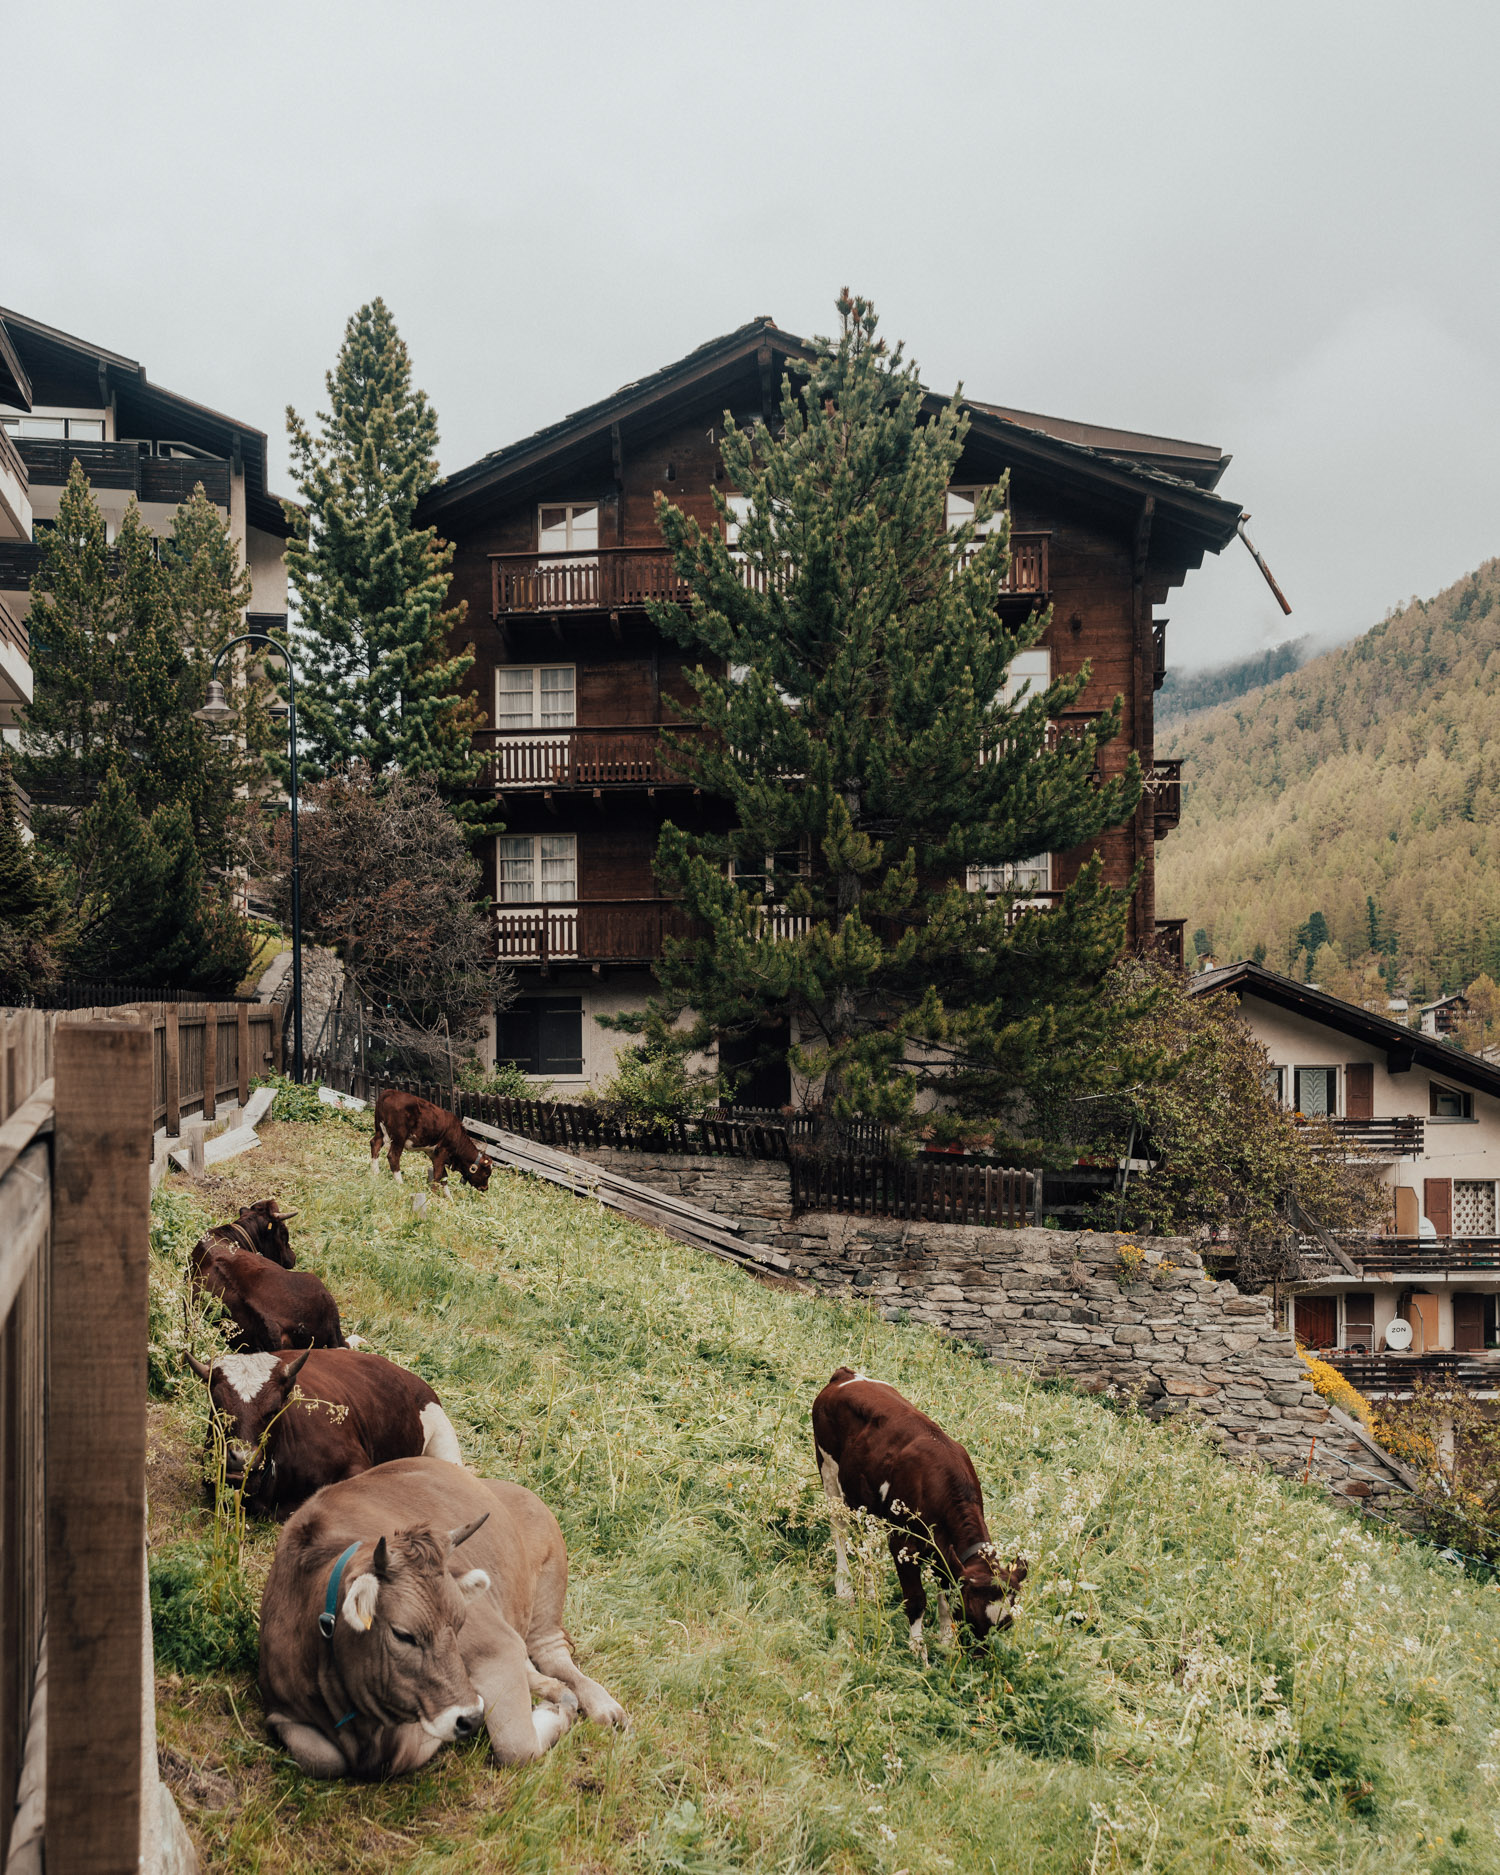 Cows in Zermatt Village